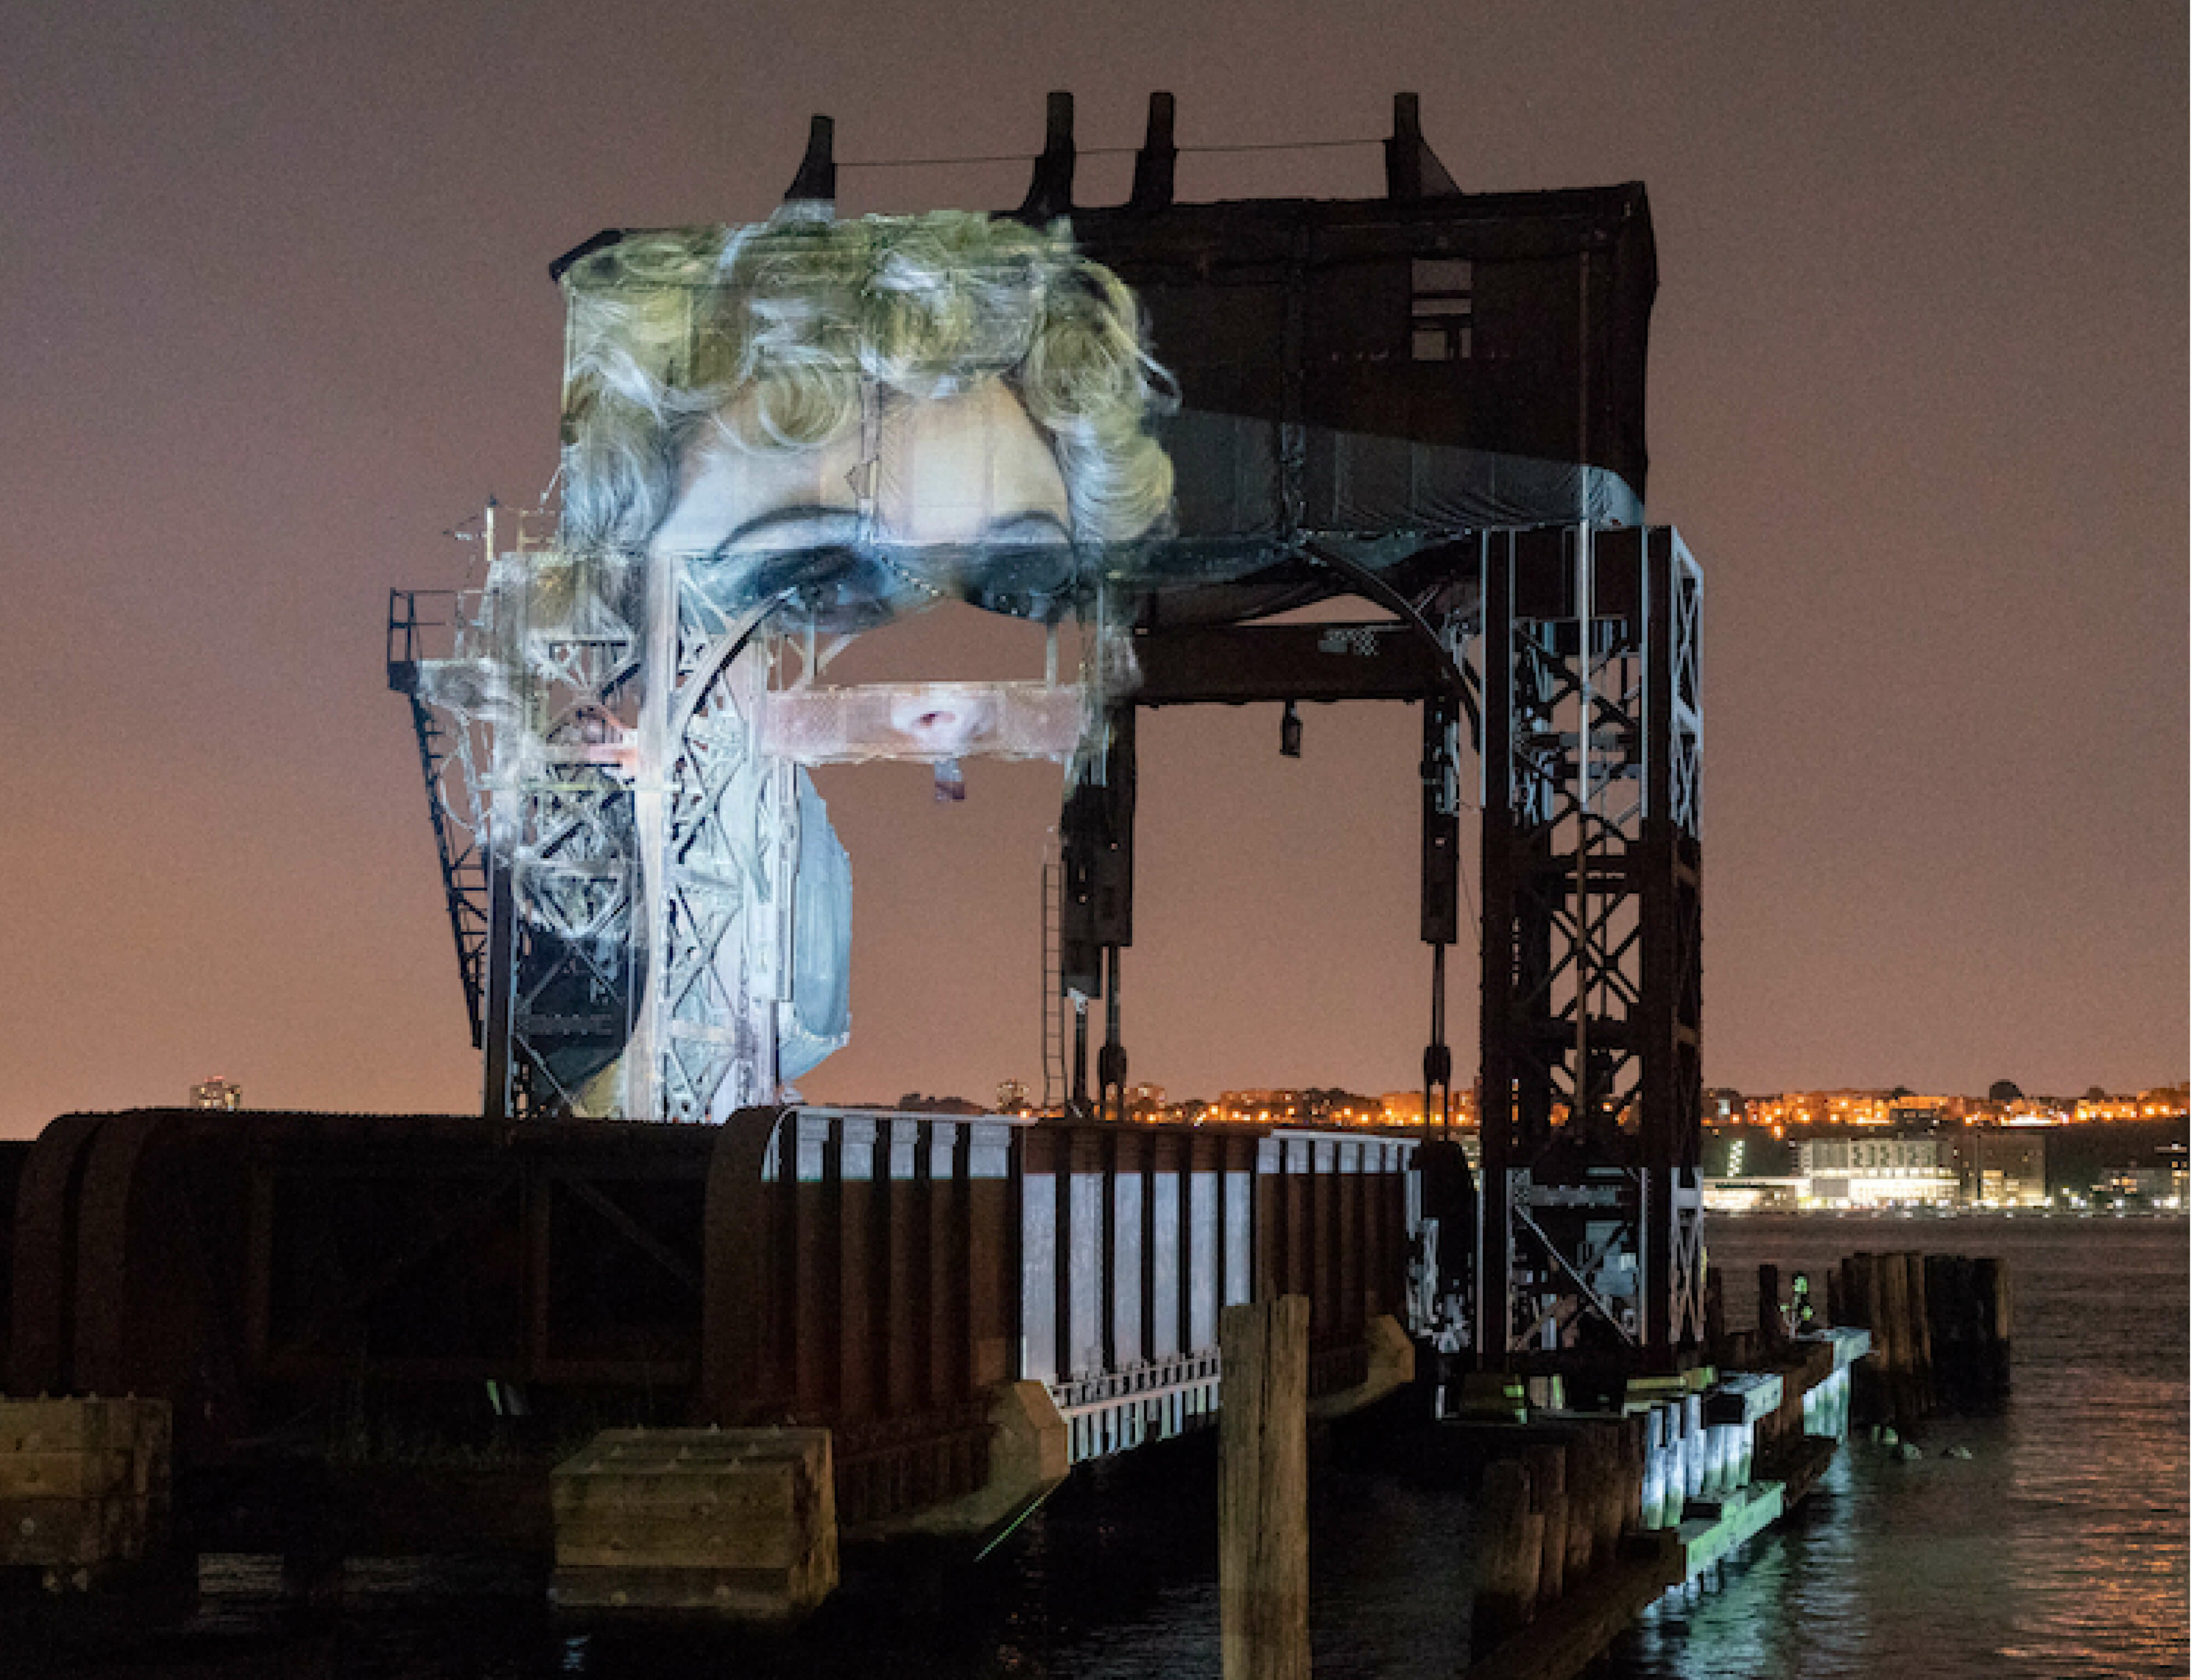 Tony Oursler unveils Tear of the Cloud for the Public Art Fund